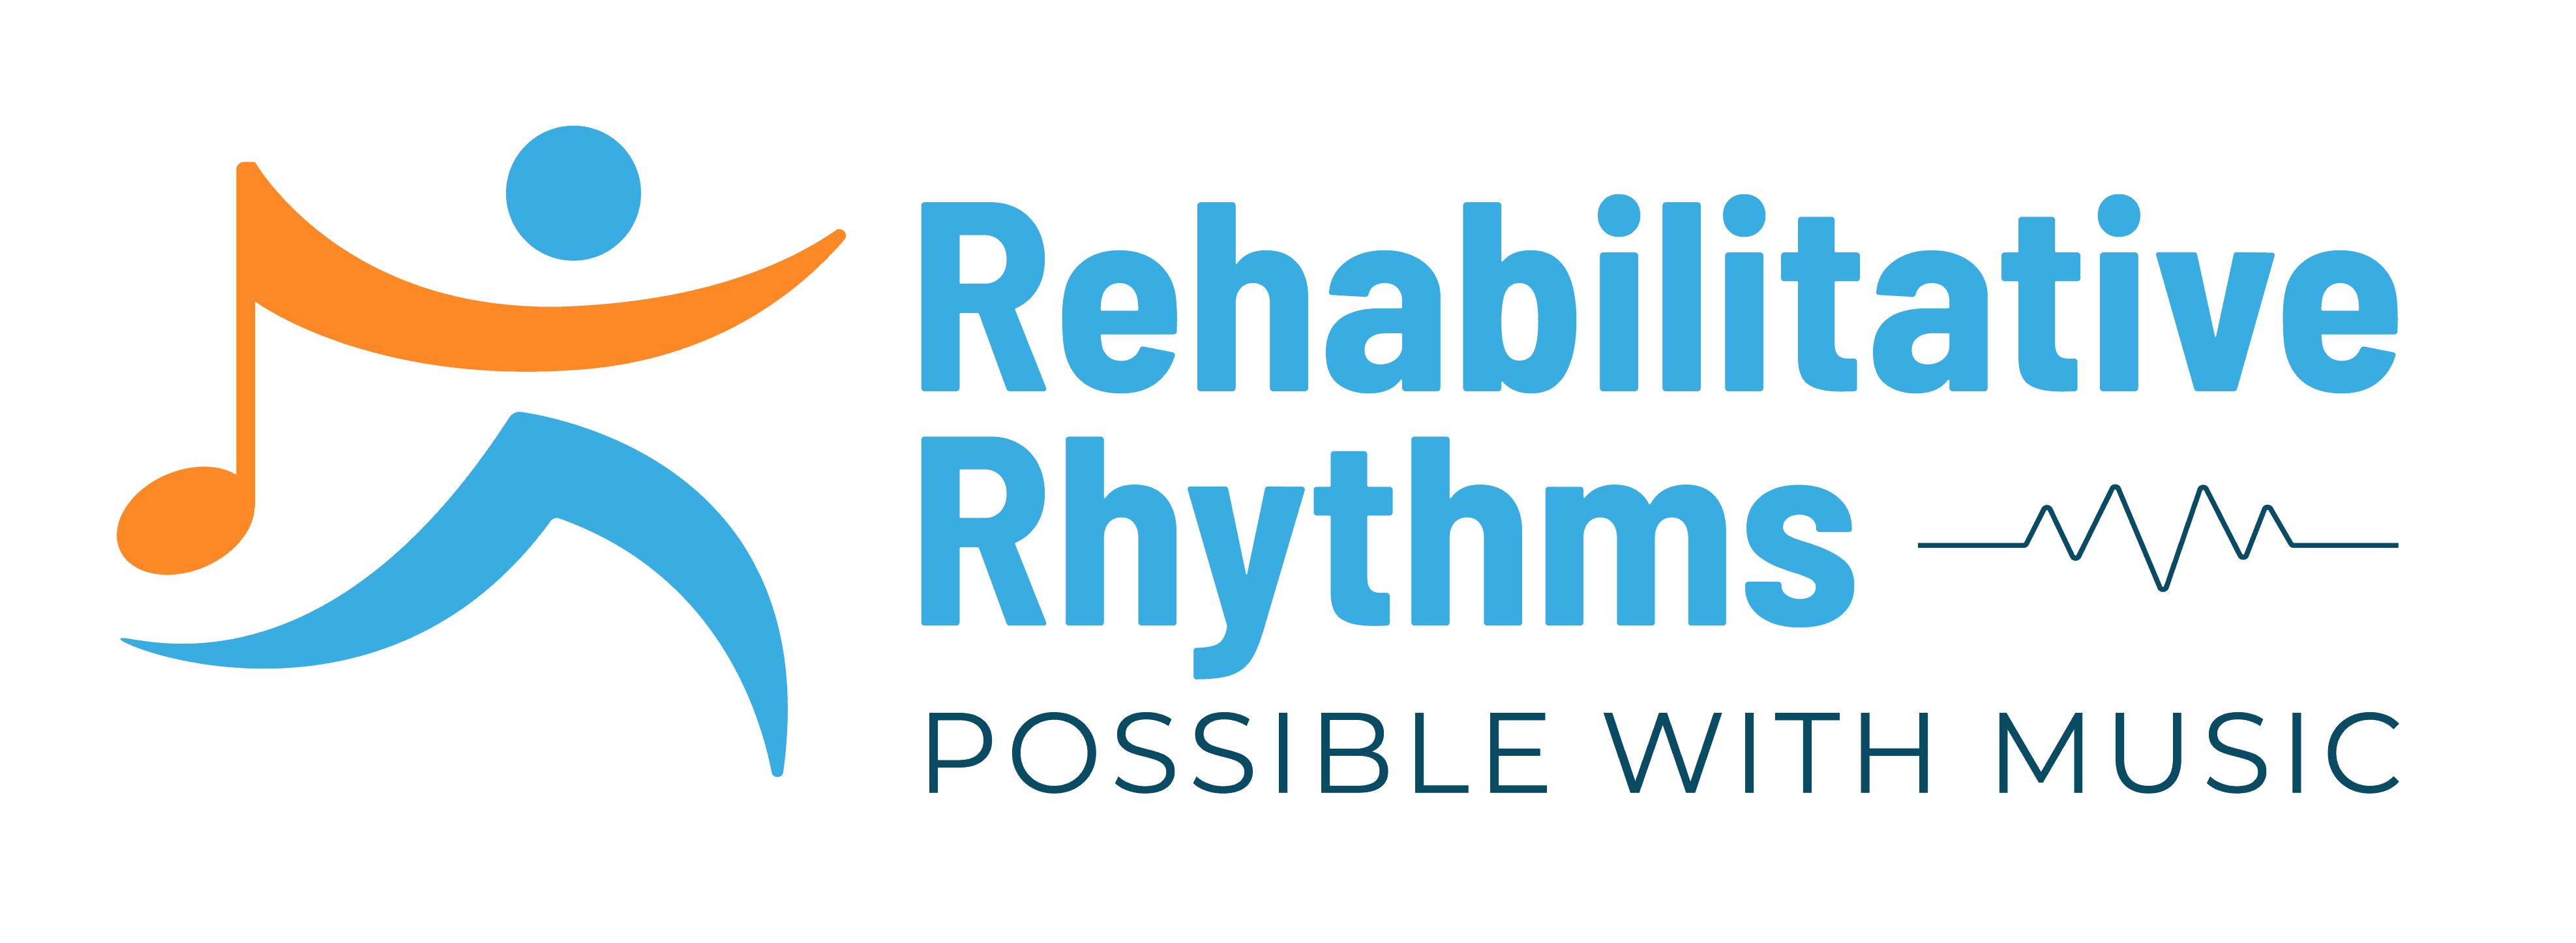 Rehabilitative Rhythms - Possible With Music Non-Profit Logo